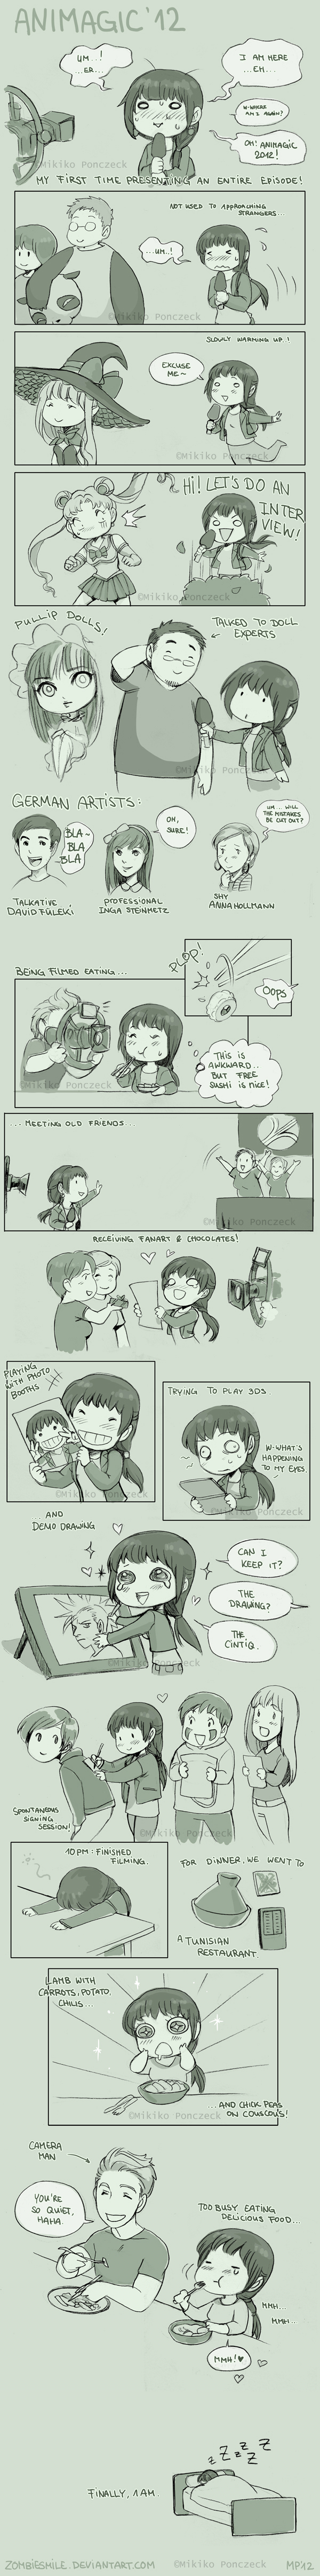 Animagic Con Report '12 by Zombiesmile